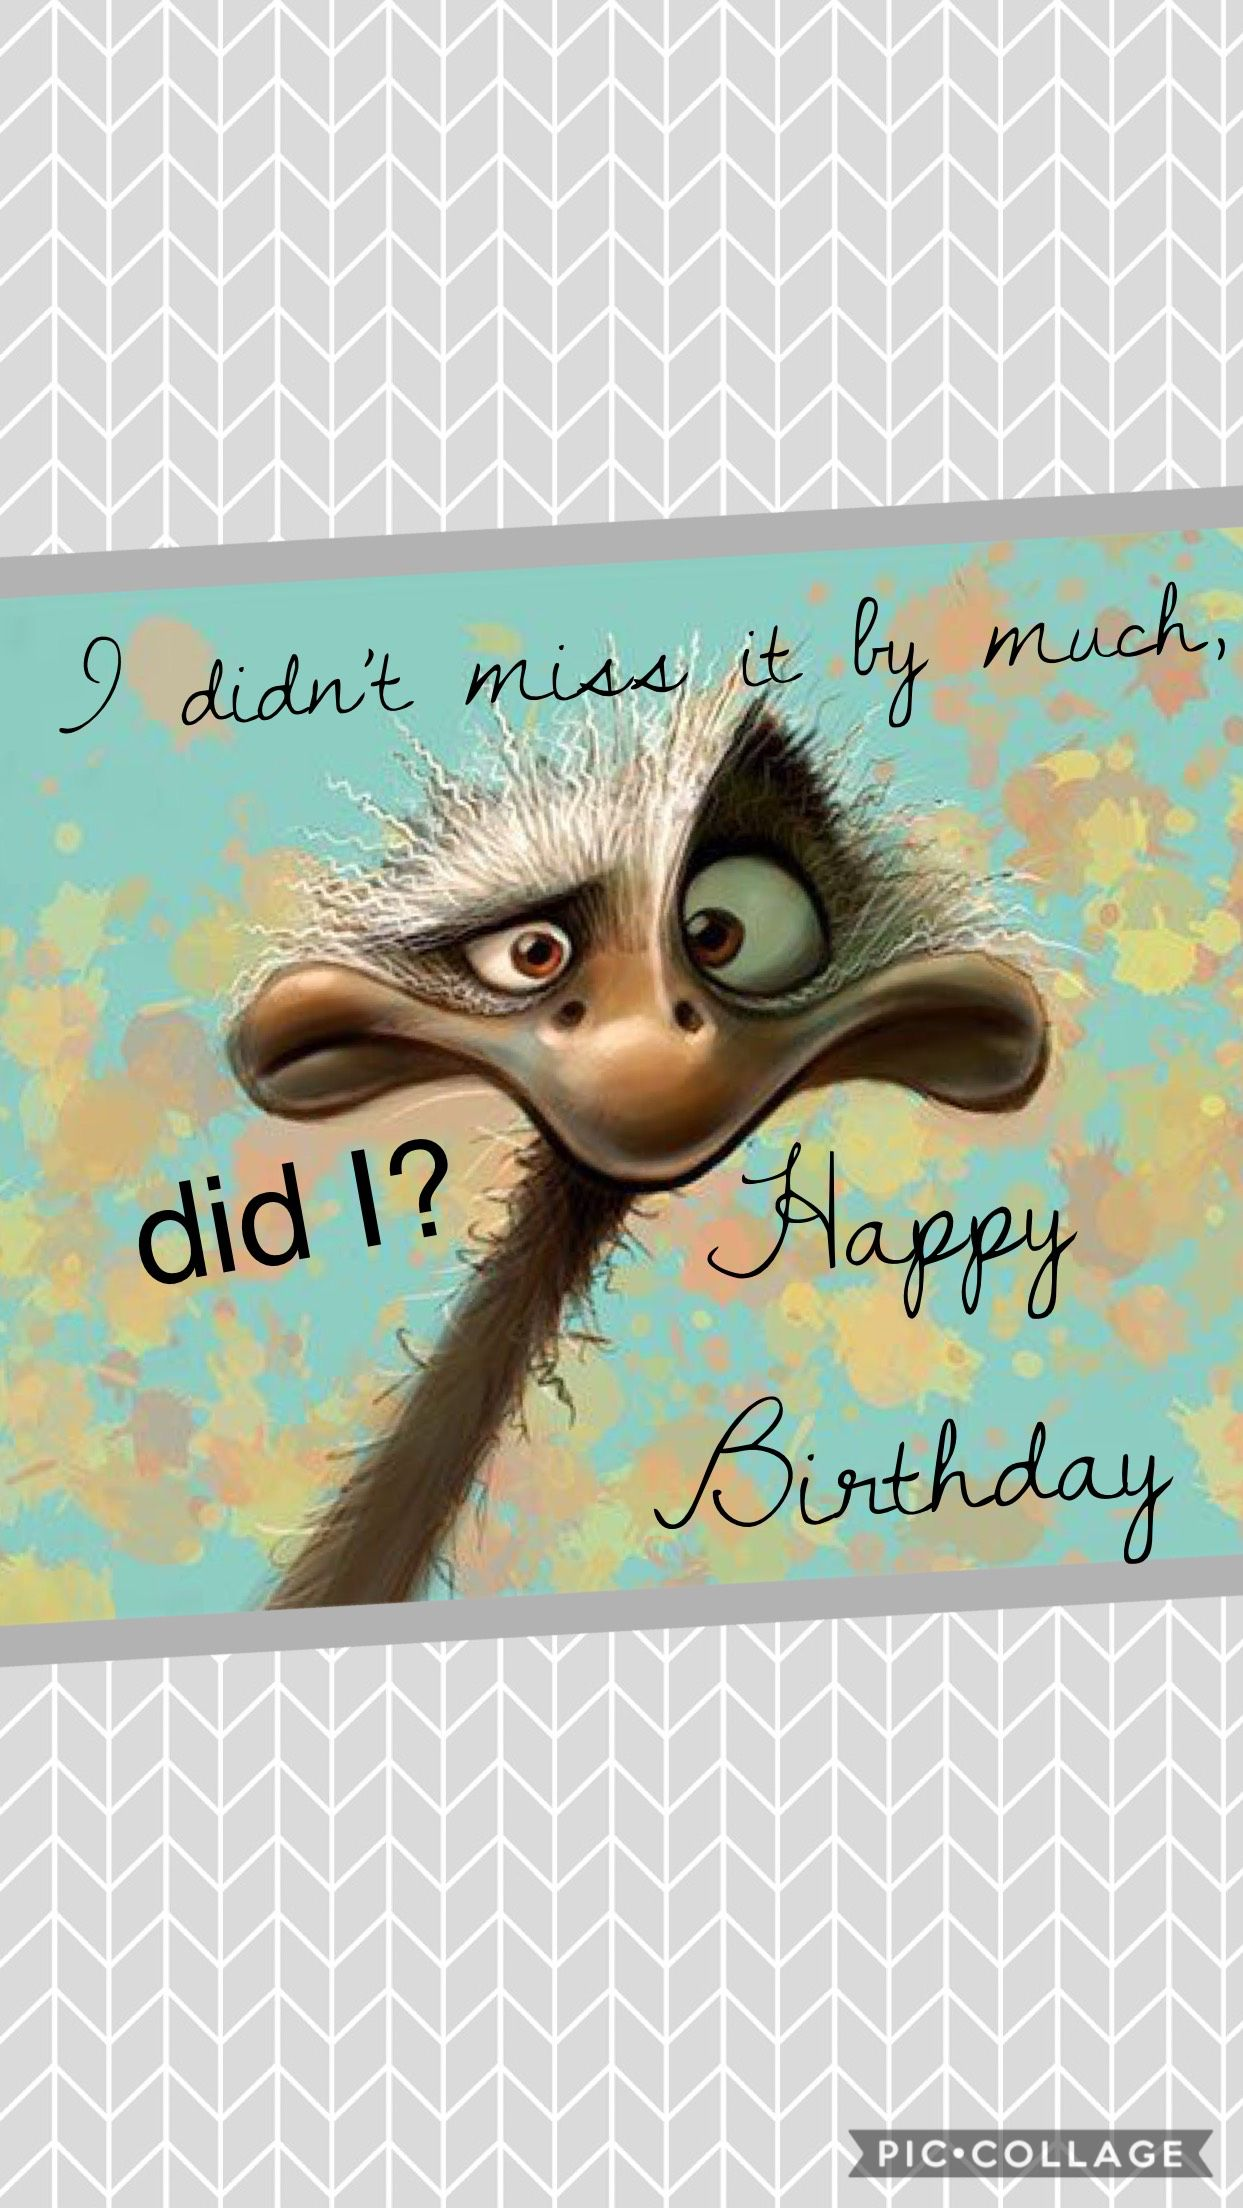 Funny Belated Birthday Quotes - Happy Birthday Wishes